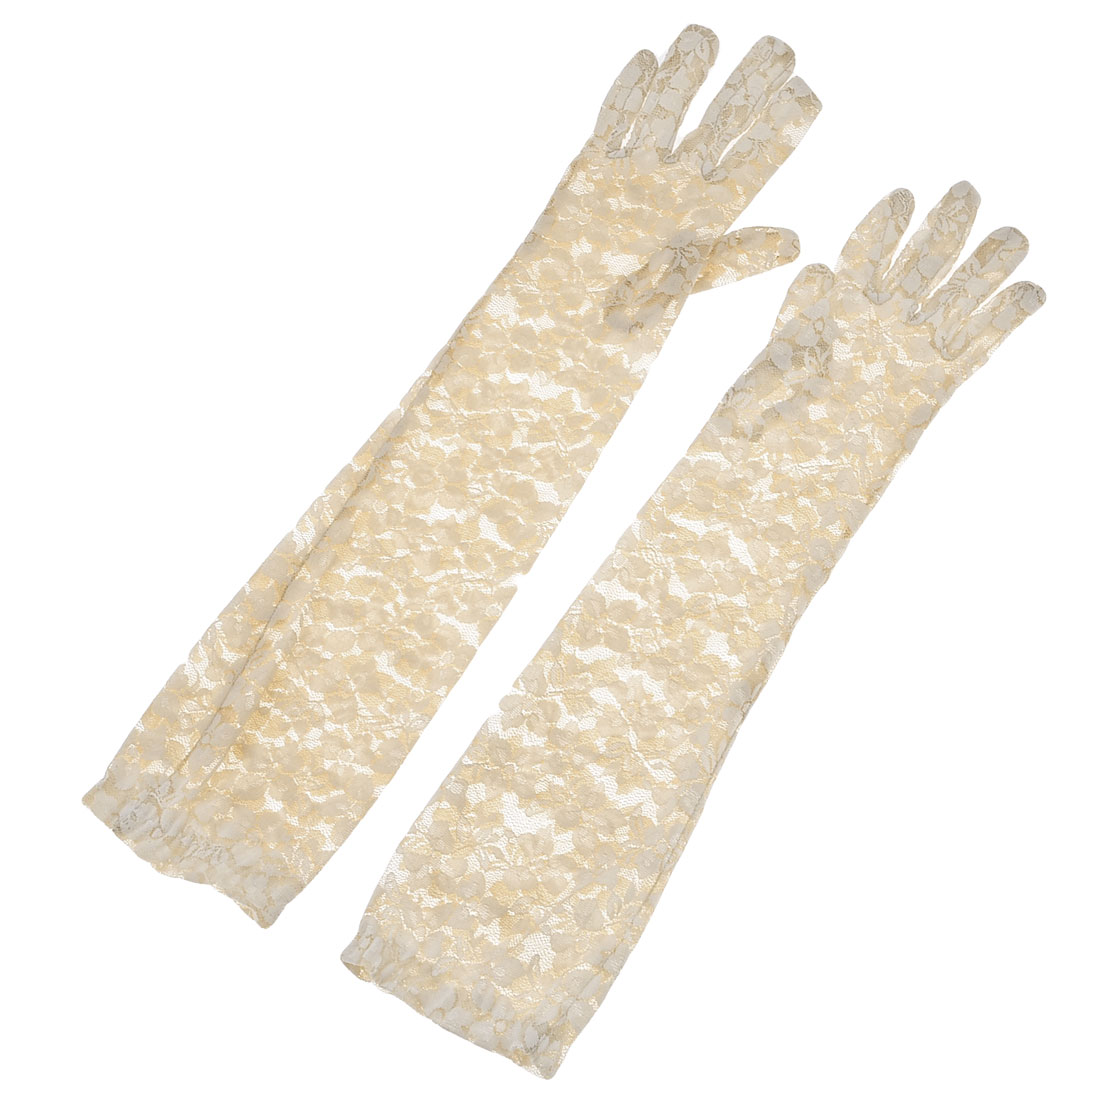 Pair Party Fullfinger Elbow Length Floral Pattern Lace Gloves Beige for Lady